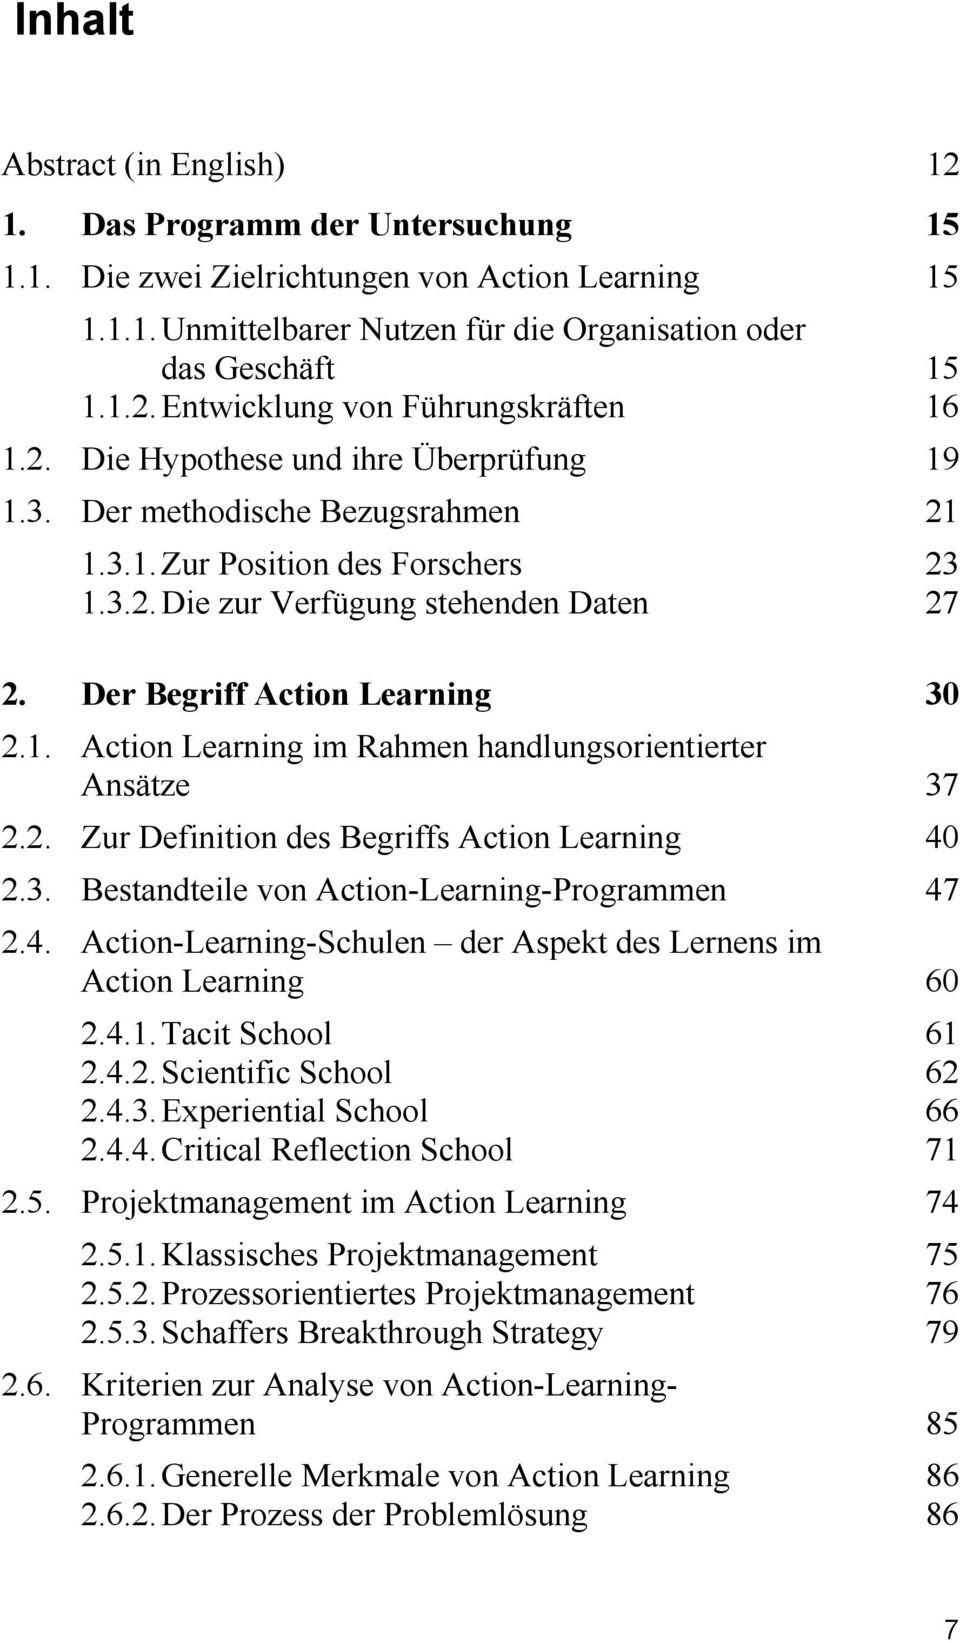 2. Zur Definition des Begriffs Action Learning 40 2.3. Bestandteile von Action-Learning-Programmen 47 2.4. Action-Learning-Schulen der Aspekt des Lernens im Action Learning 60 2.4.1.